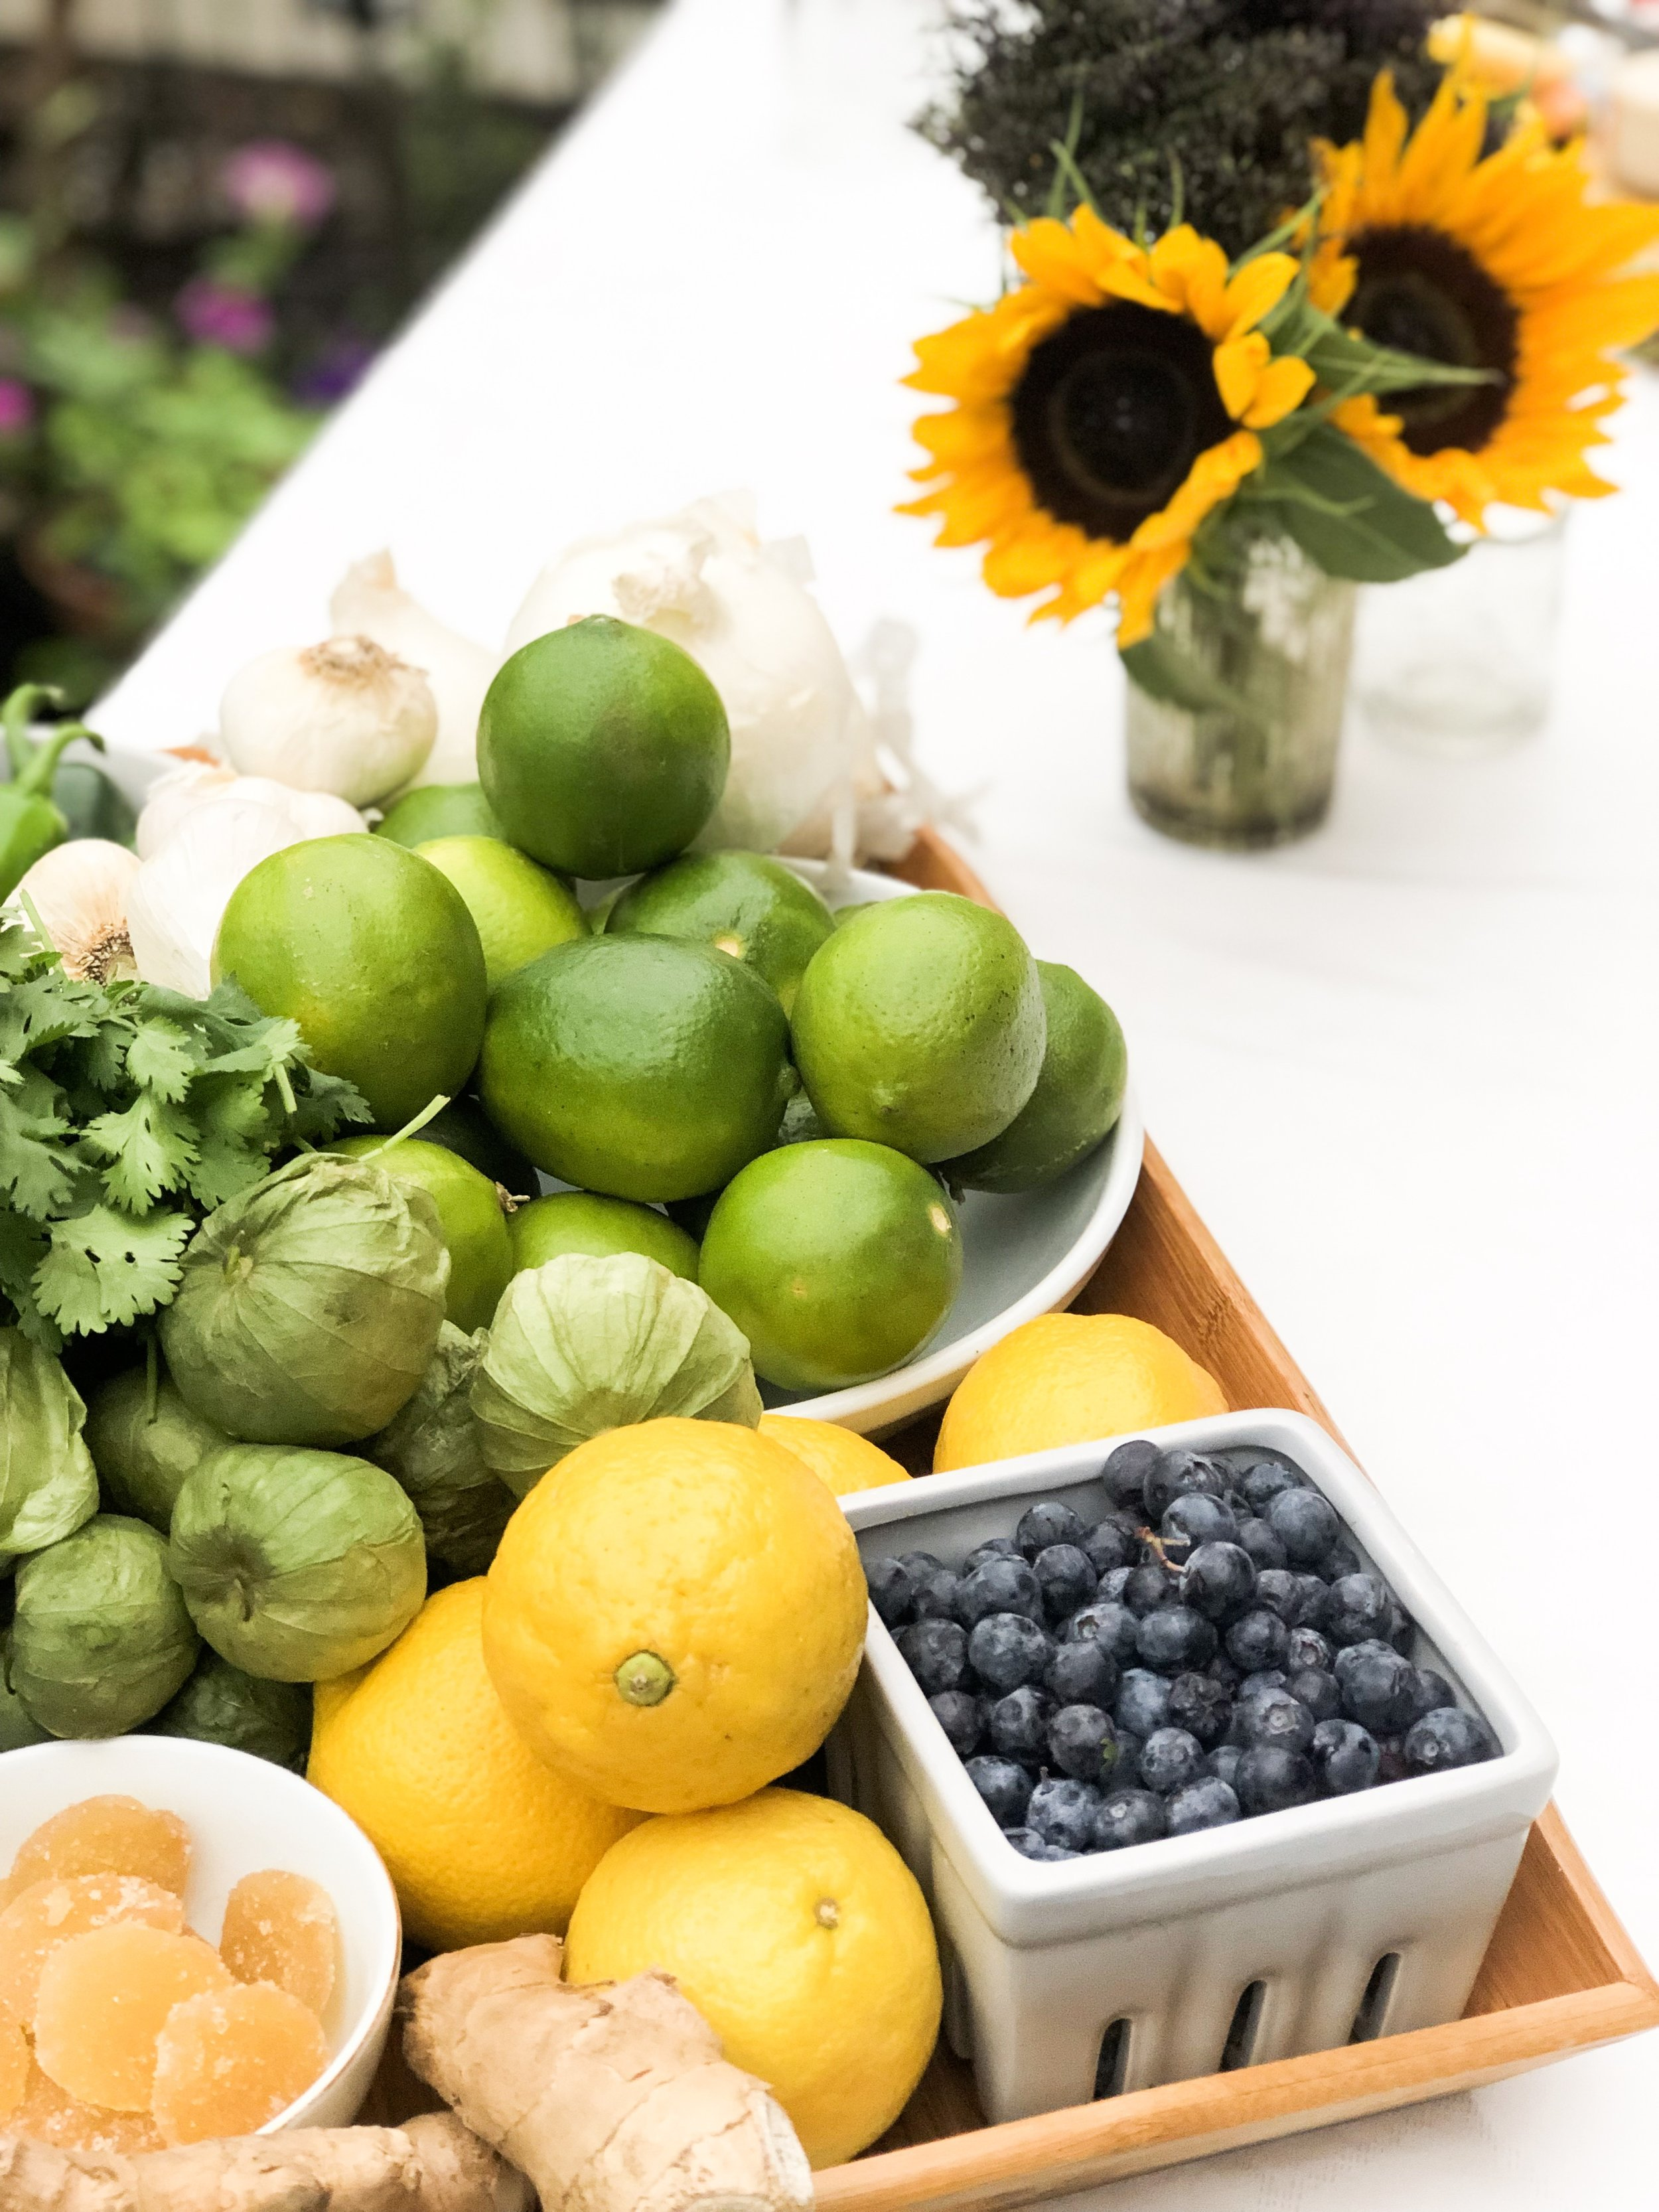 Fresh ingredients are abundant in summer so make sure to savor them with friends.